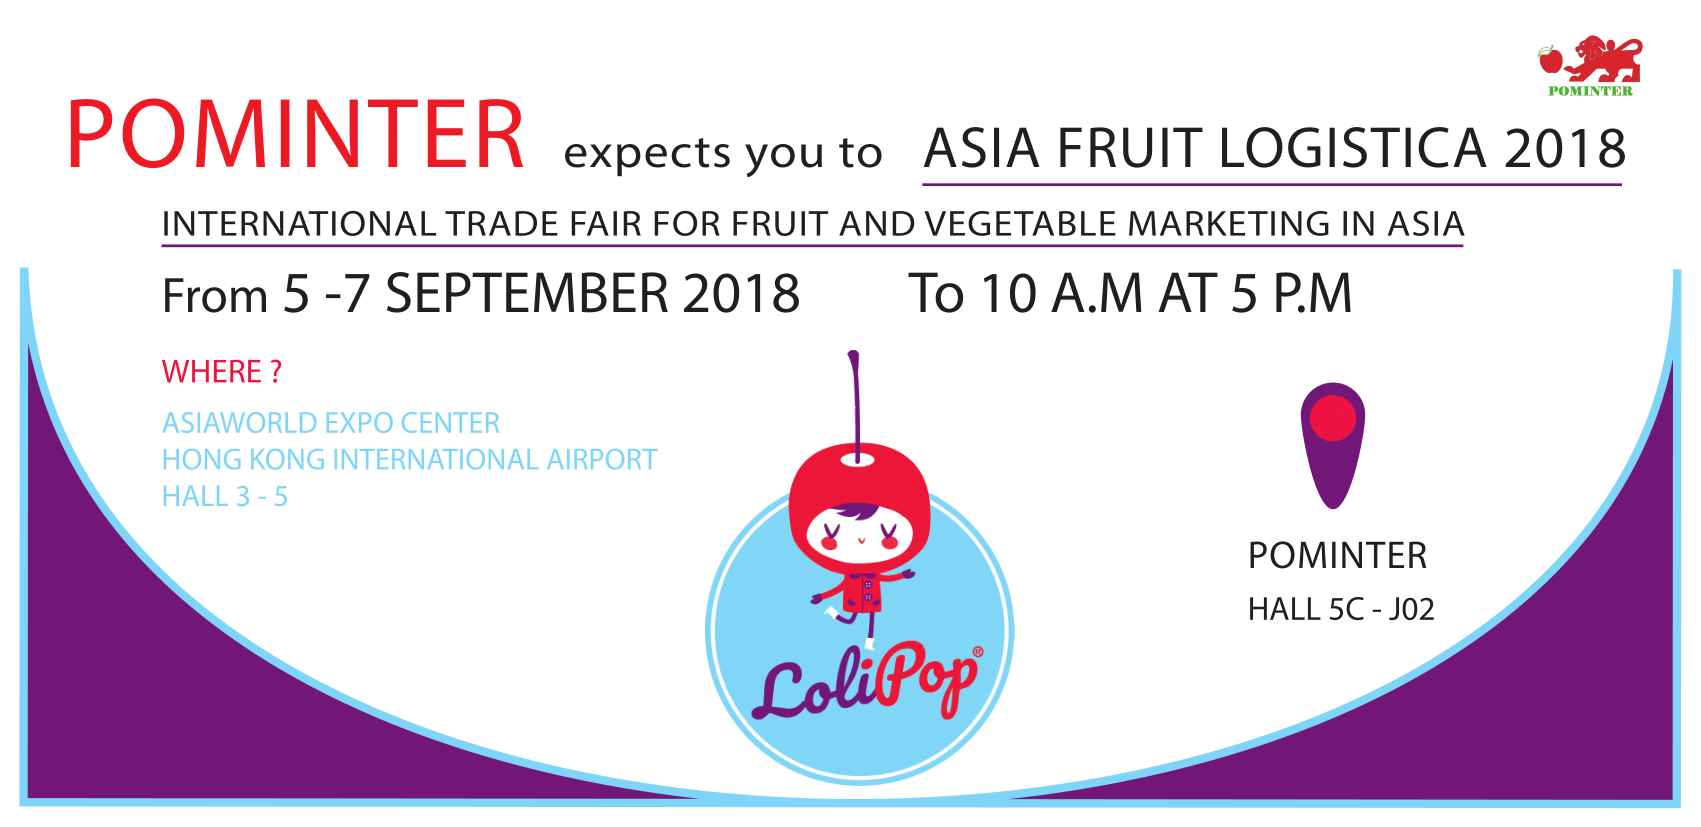 ASIAFRUIT LOGISTICA 2018 HONG KONG